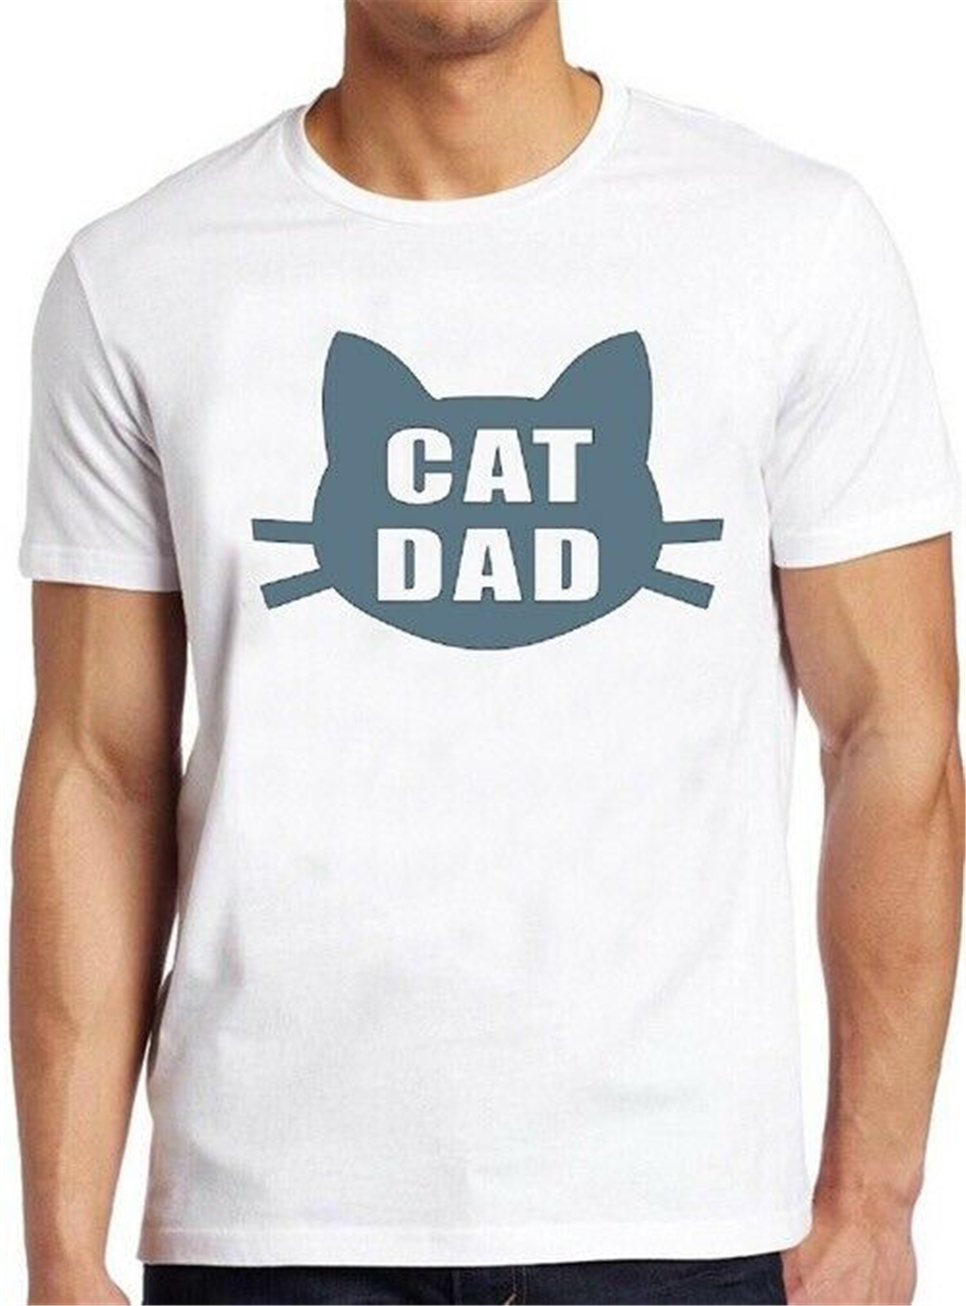 Cat Dad T Shirt Best Ever Funny Saying Pun Present Slogan Cool Gift Tee 122 Teenage Pop Top Tee Shirt image